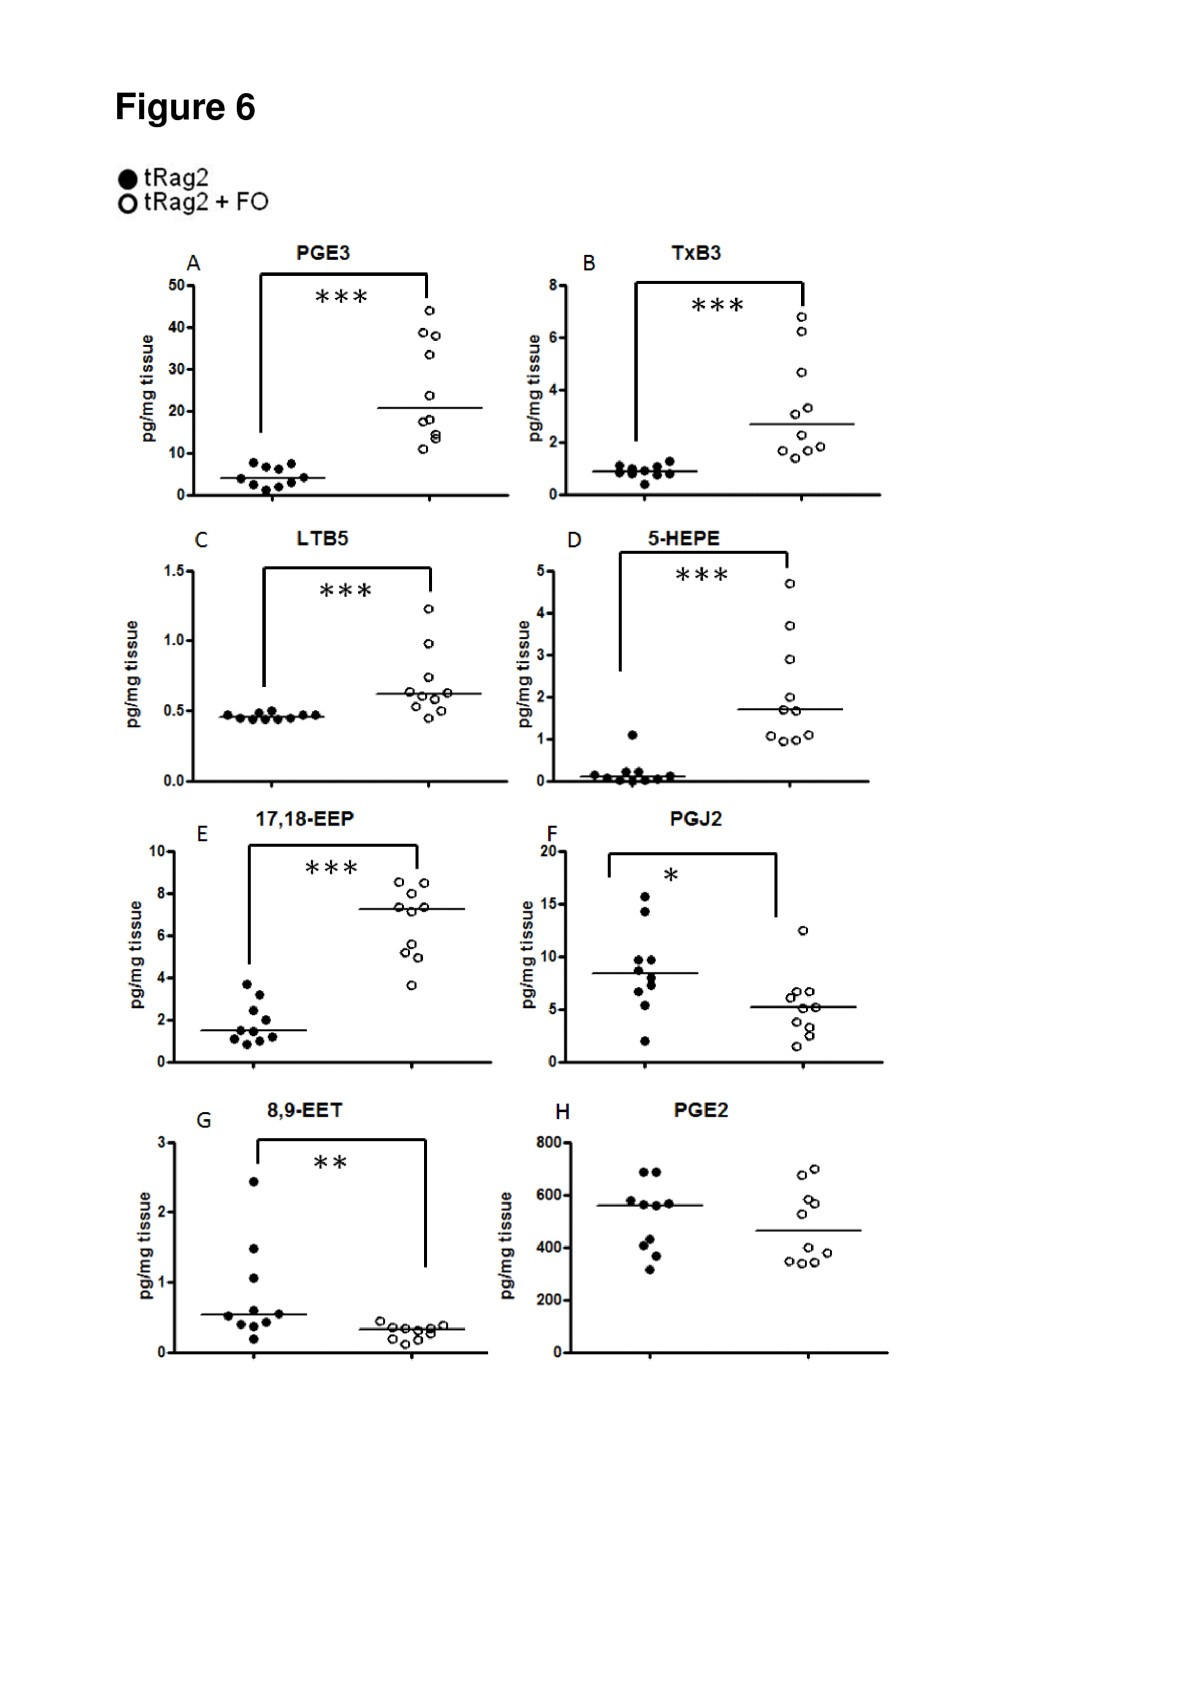 Effects Of Increase In Fish Oil Intake On Intestinal Eicosanoids And H2 Krill Inflammation A Mouse Model Colitis Lipids Health Disease Full Text